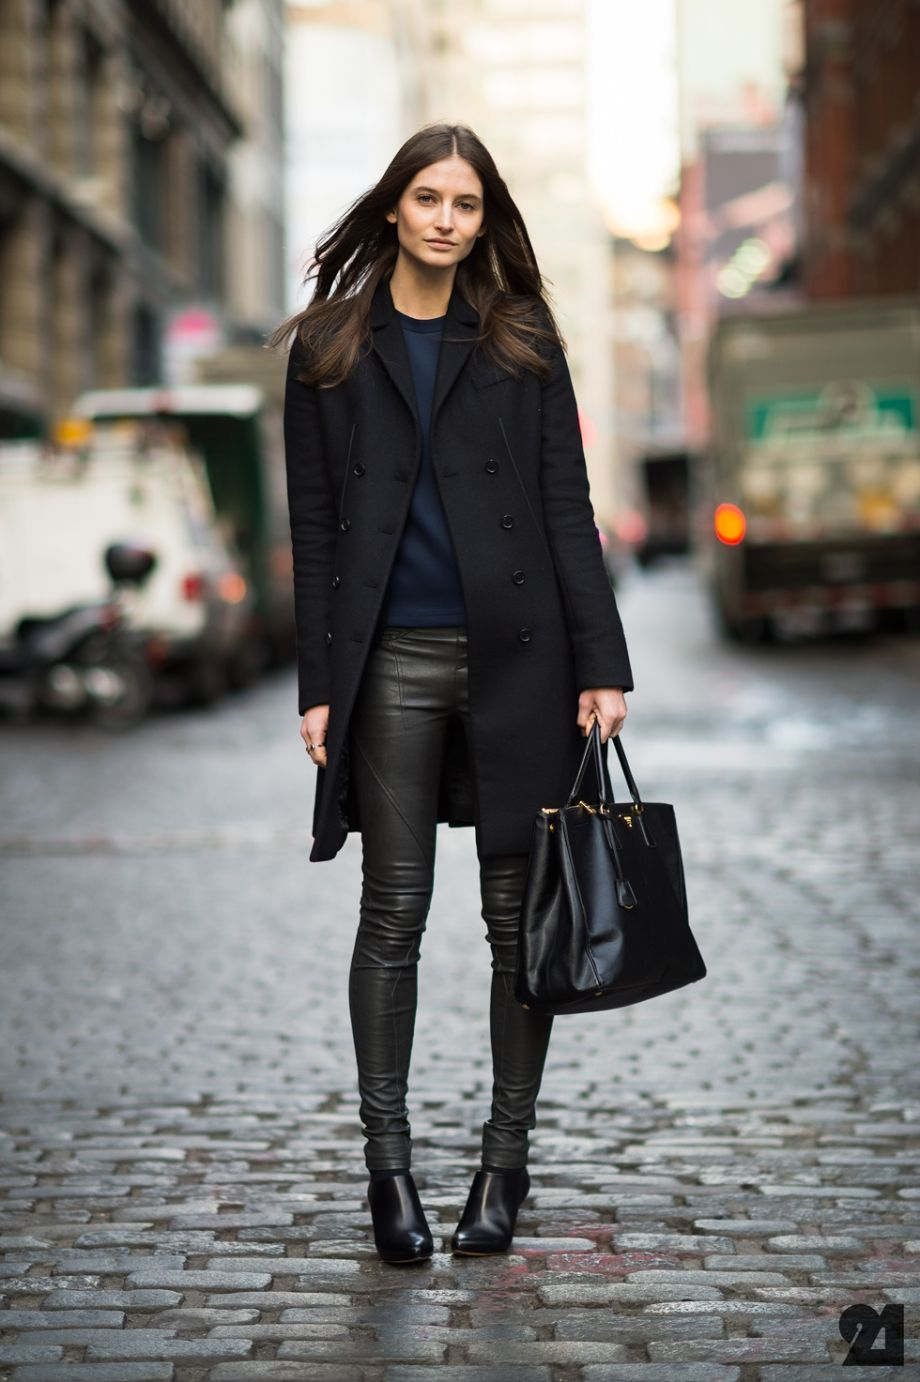 black & blue with leather. fantastic. #SuzanneDiaz #offduty in NYC. #Le21eme